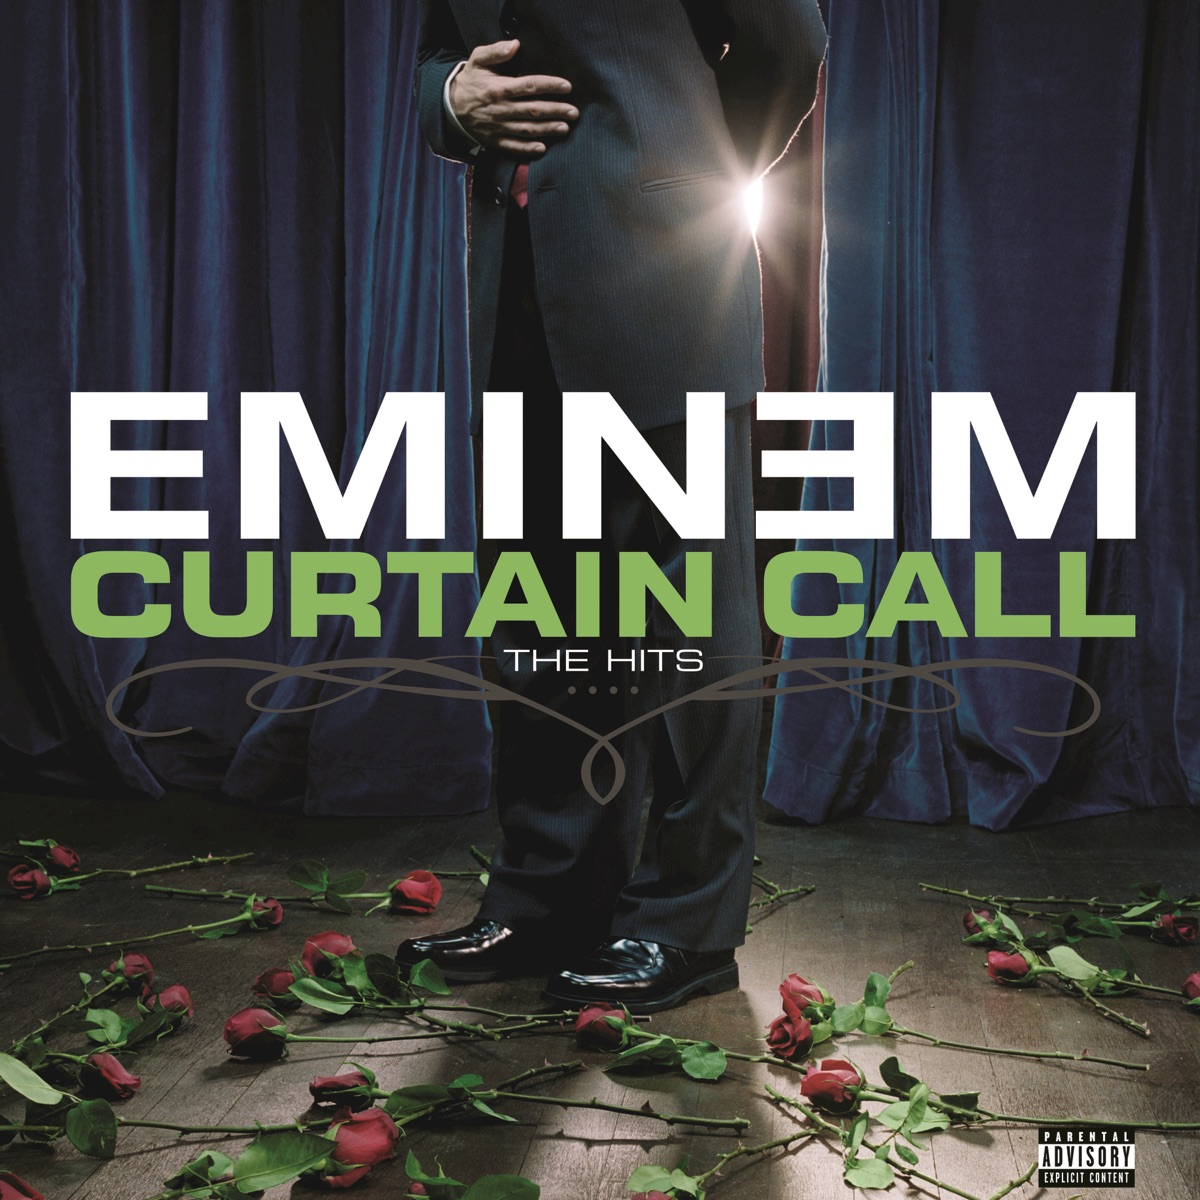 Curtain call the hits deluxe version itunes plus m4a album - Eminem Curtain Call The Hits Deluxe Version 2005 Itunes Plus Aac M4a Album